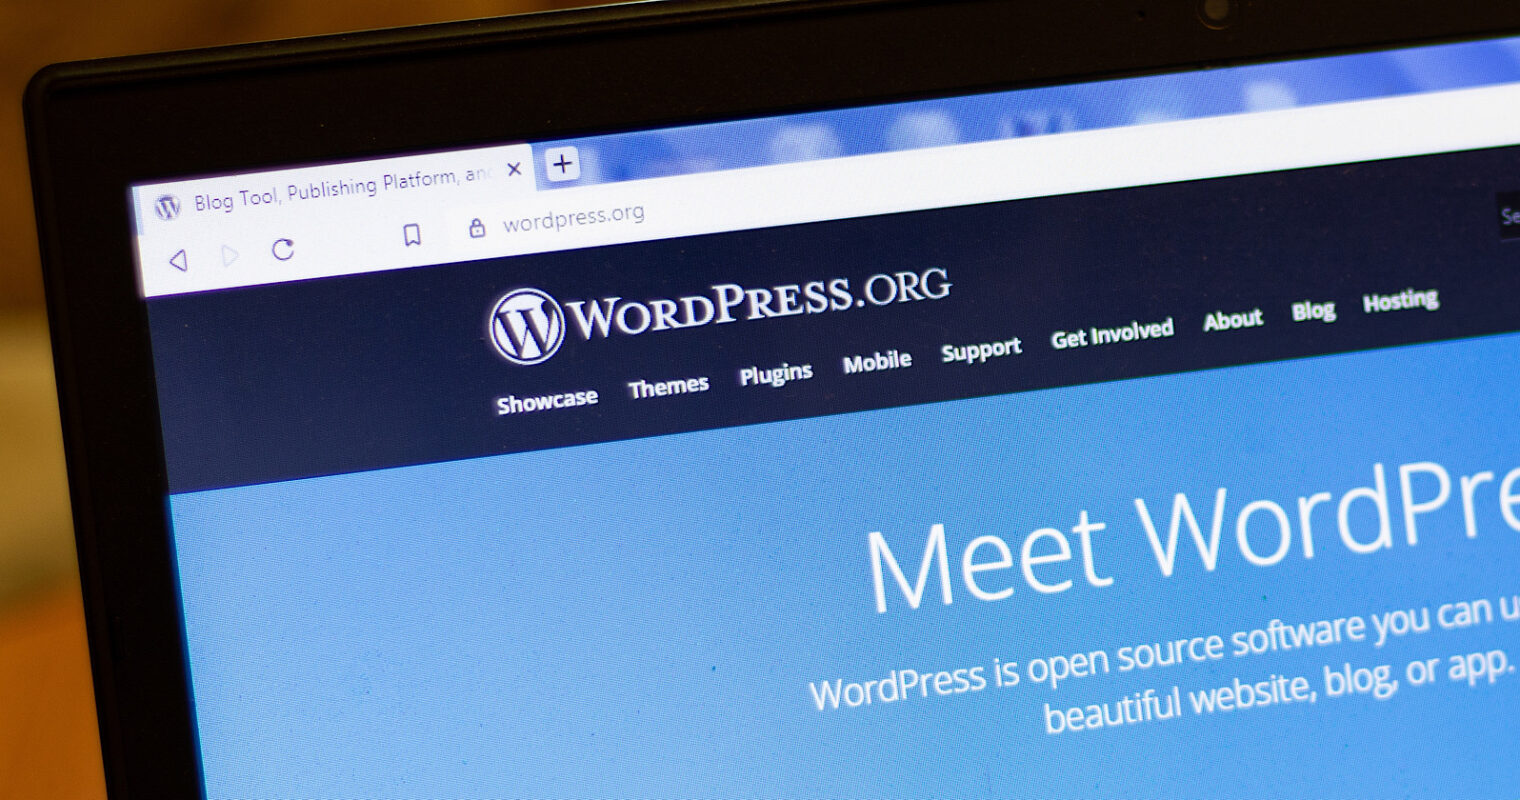 WordPress Powers 39.5% of All Websites